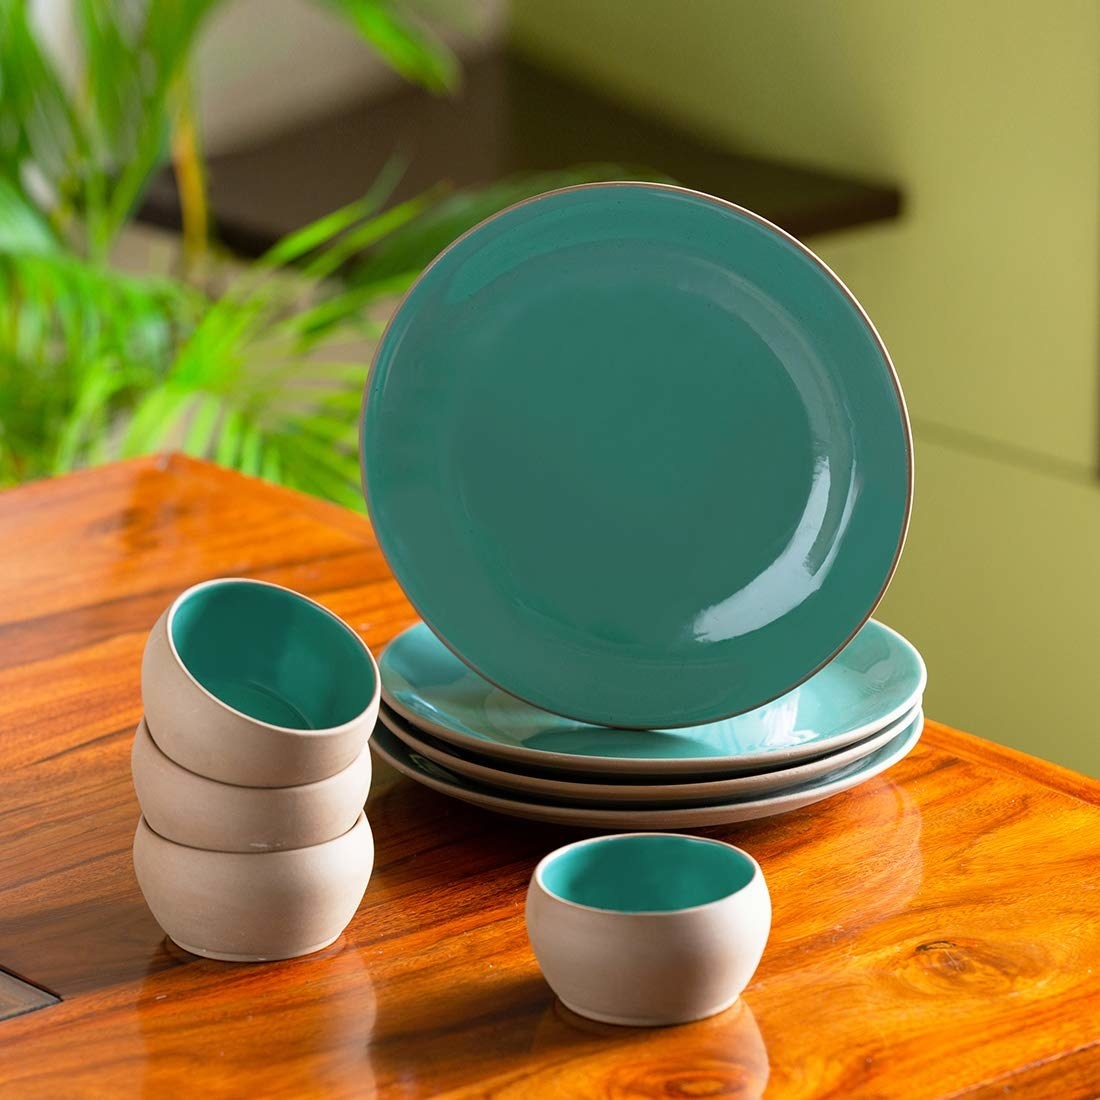 A set of turquoise plates on a table